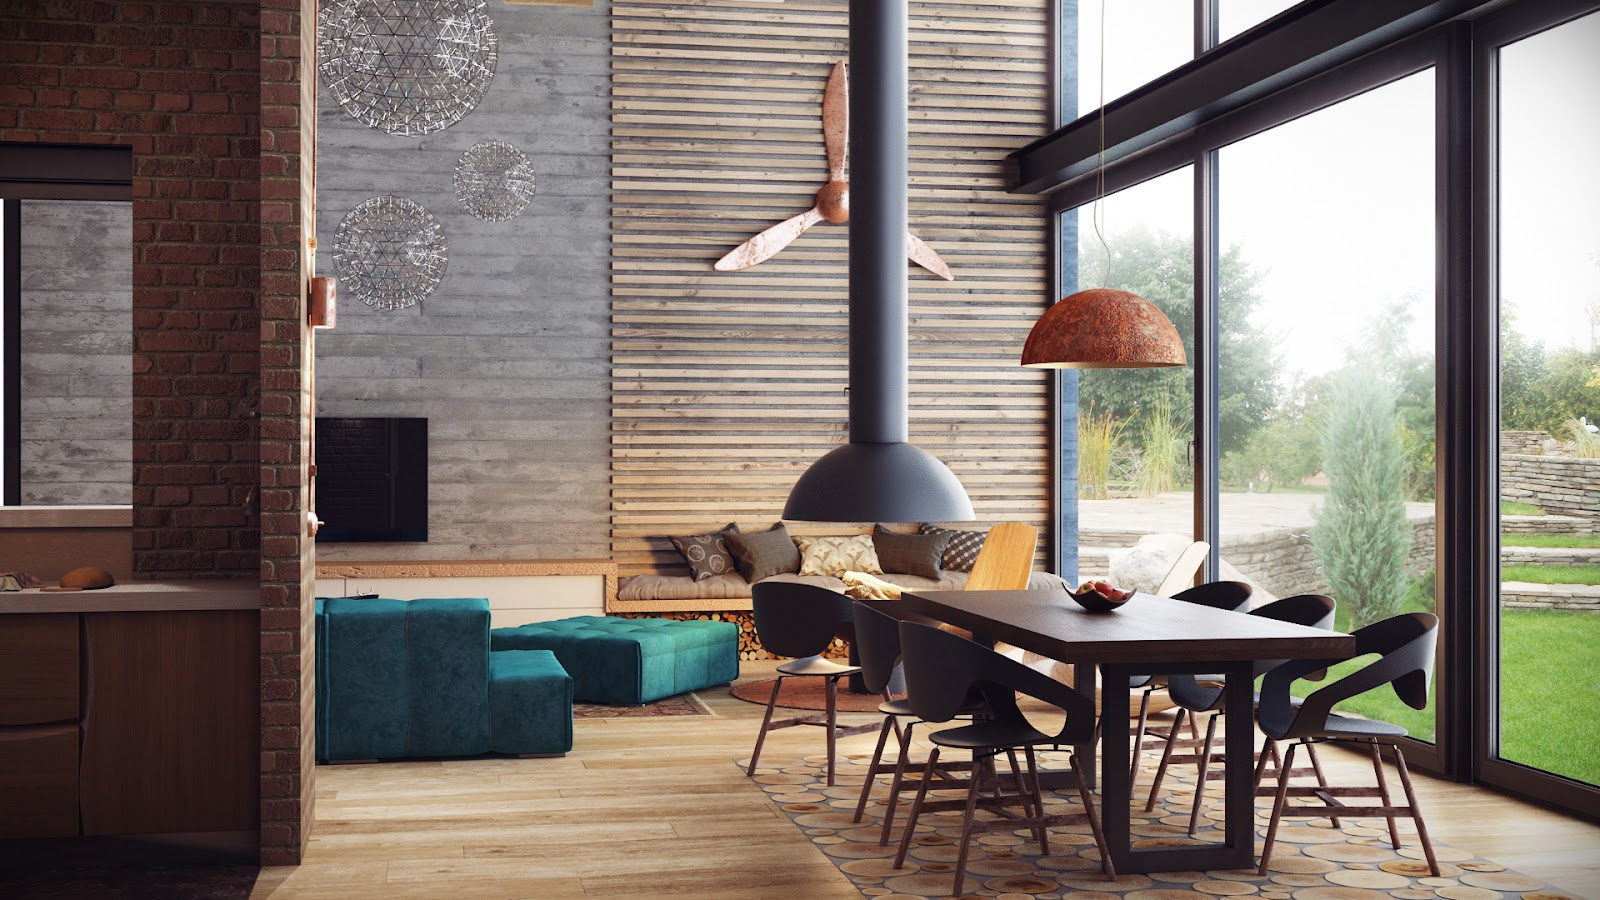 Loft Style In The Interior The Entire Space Is Warmed By The Wooden Ceiling Panels Which Also